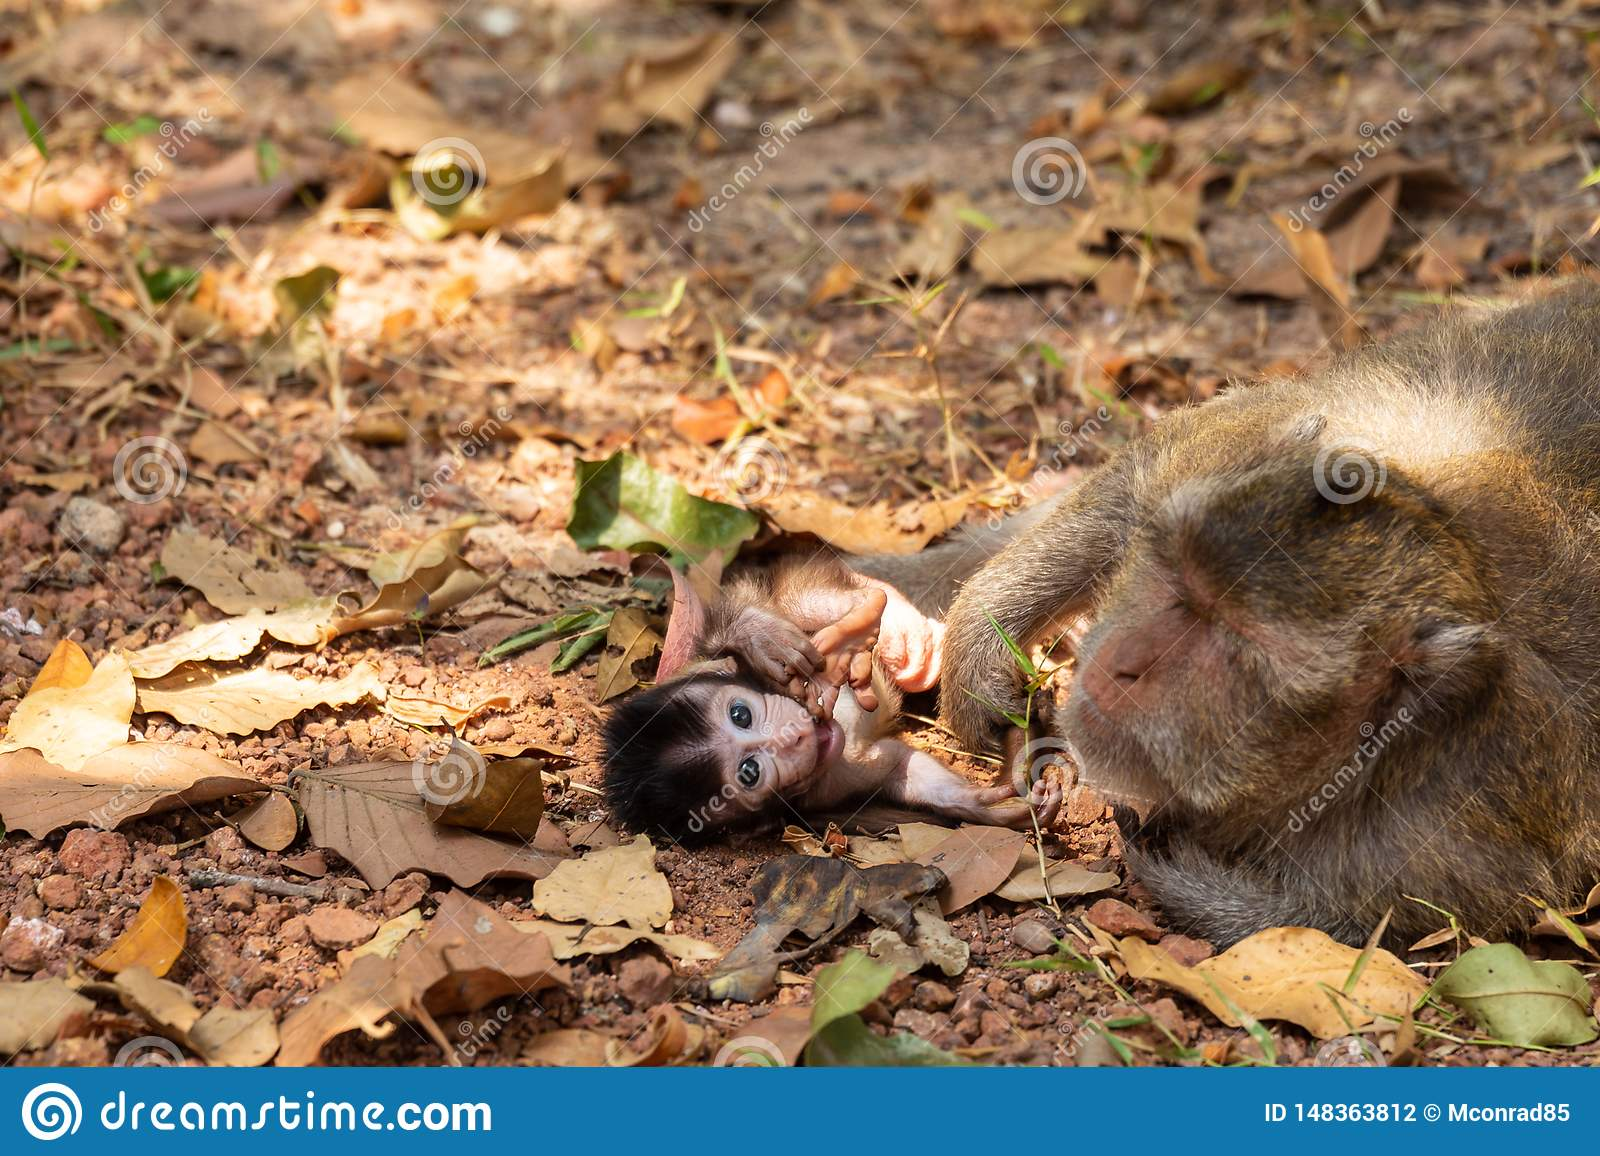 Newborn baby ape with crazy hairstyle